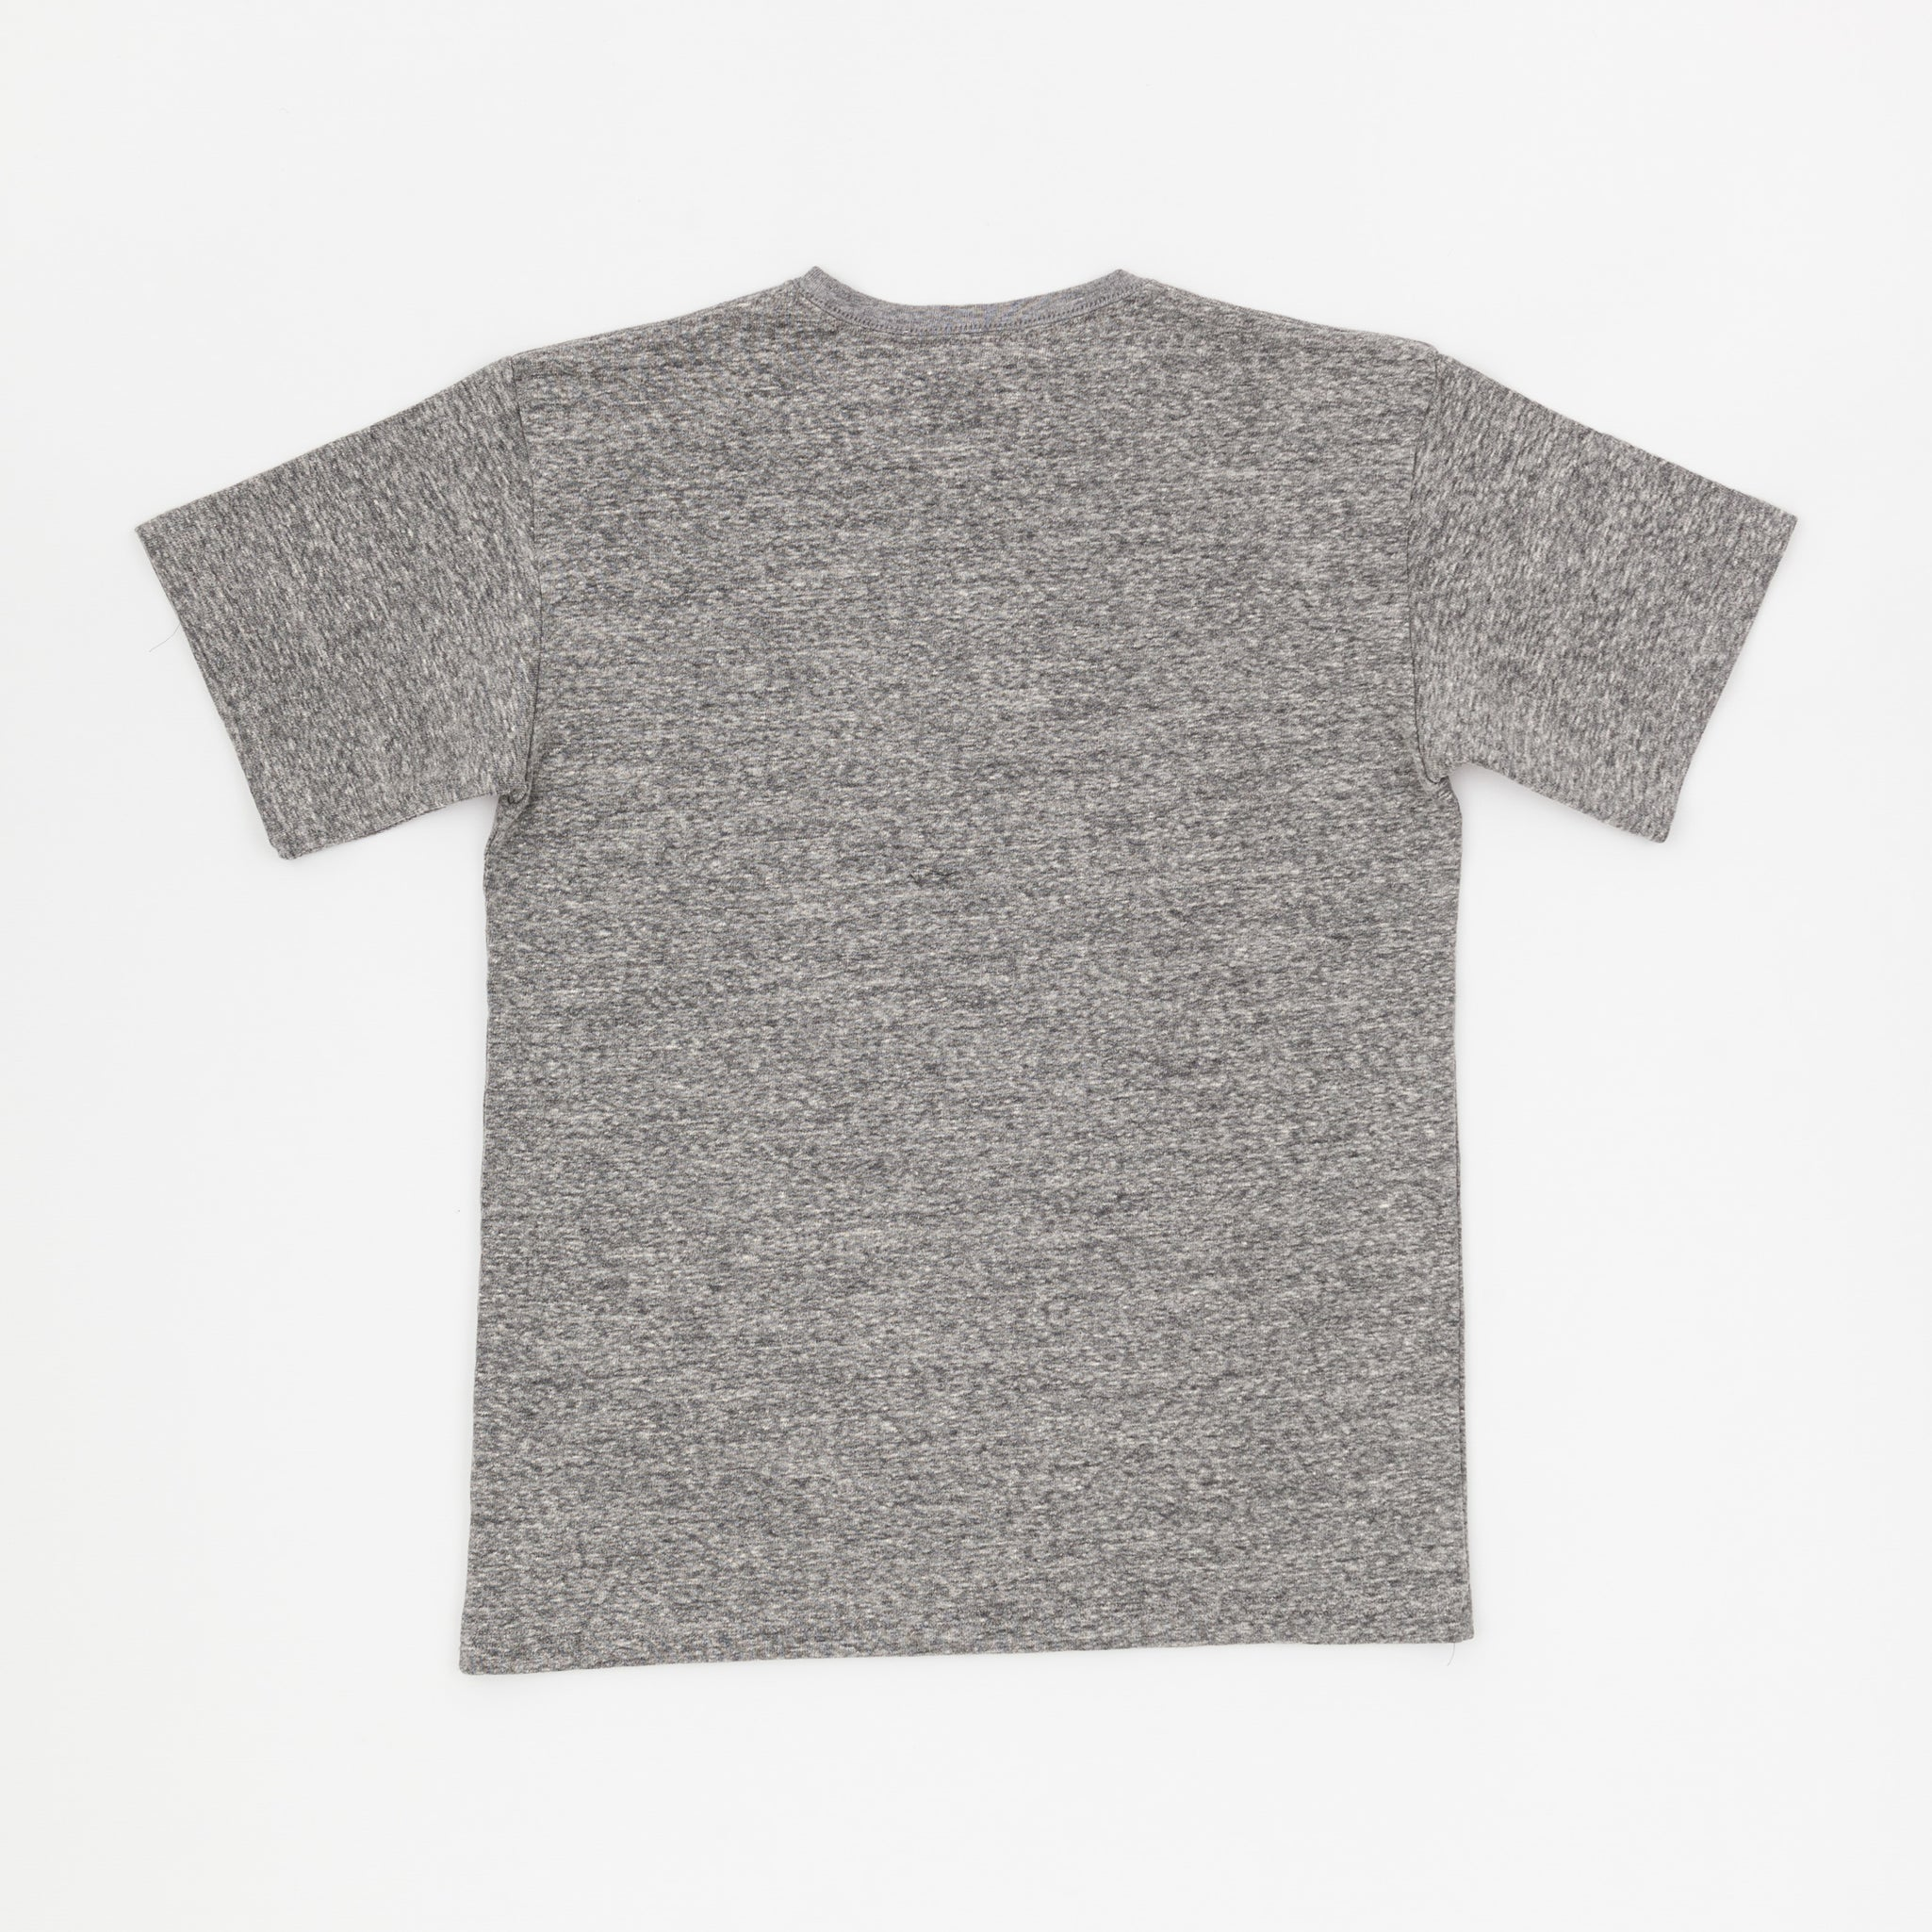 C/N Pocket T-Shirt